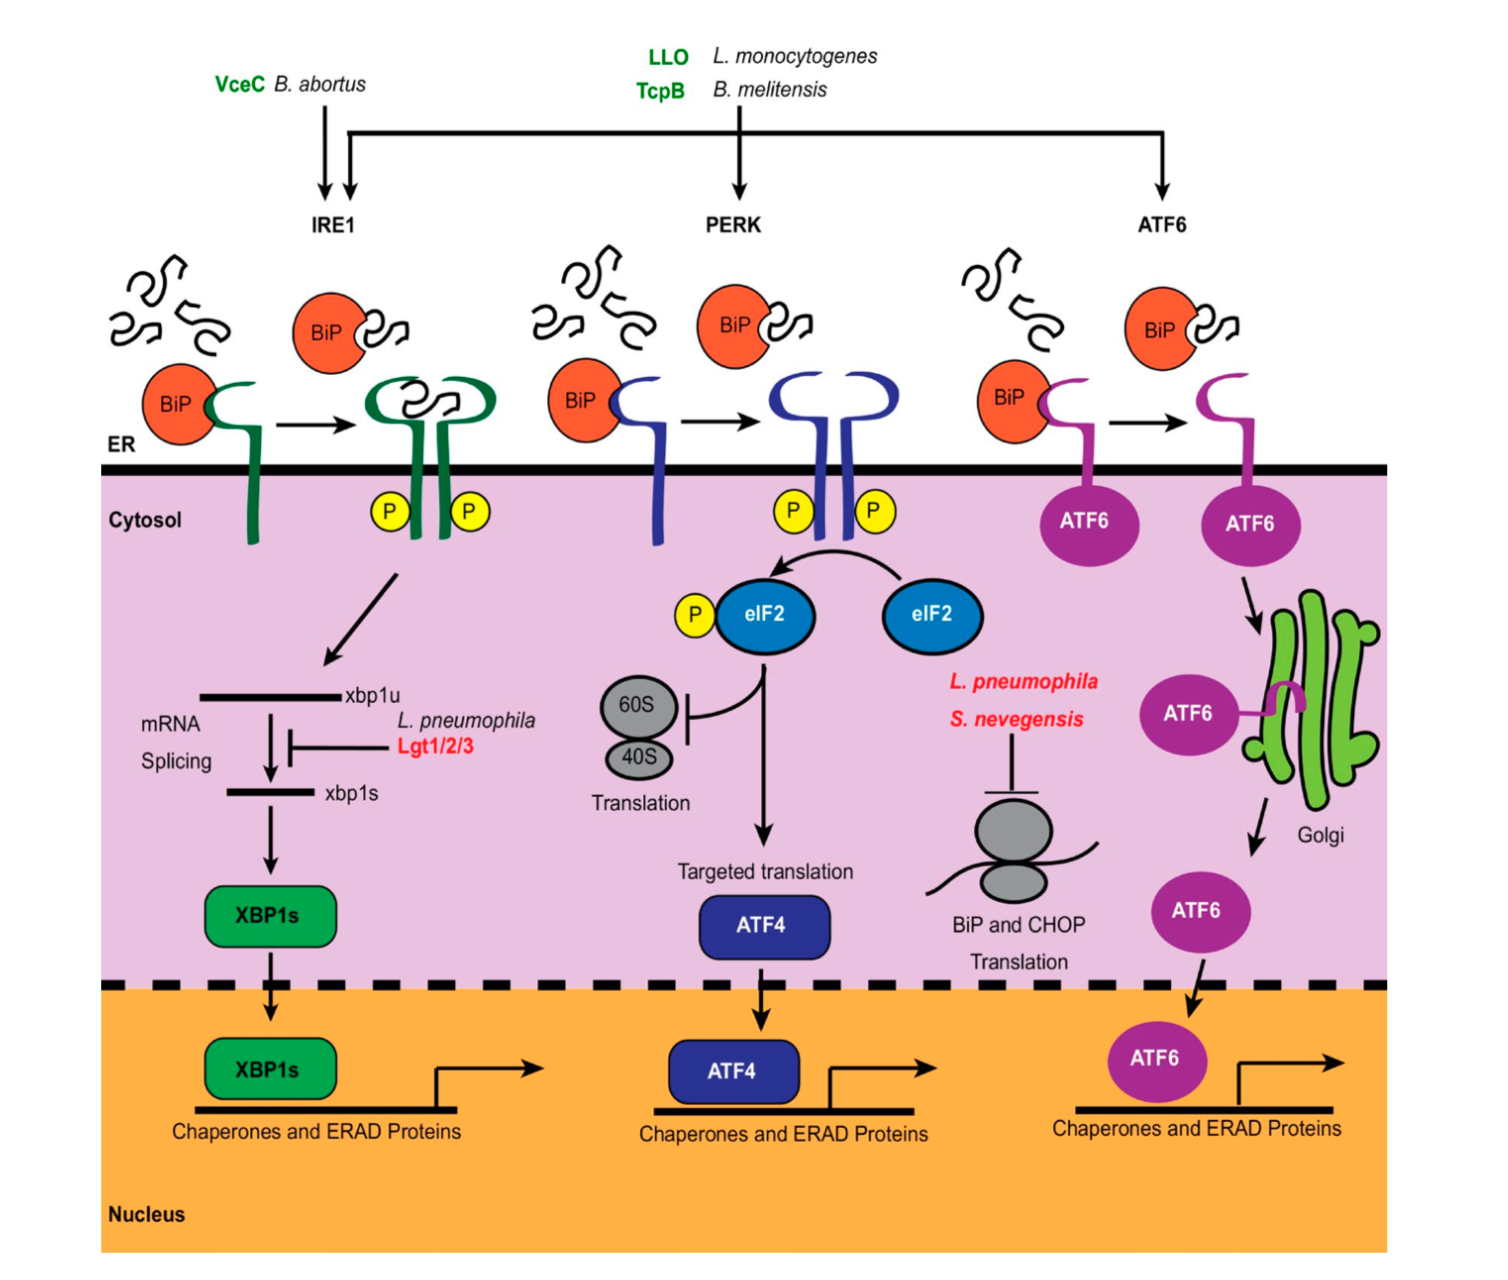 The UPR is mediated by three major sensors on the surface of the ER: IRE1, PERK, and ATF6. In the presence of unfolded proteins, the ER resident chaperone, BiP, dissociates from these UPR sensors, which contributes to their activation and downstream cellular responses, which include expression of protein chaperones and ERAD. Bacterial pathogens both activate (green) and inhibit (red) all three branches of the UPR. Source: Cornejo E, Schlaermann P, Mukherjee, S.  How to rewire the host cell: A home improvement guide for intracellular bacteria.   J Cell Biol .  2017  Nov 2. doi:10.1083/jcb.201701095.